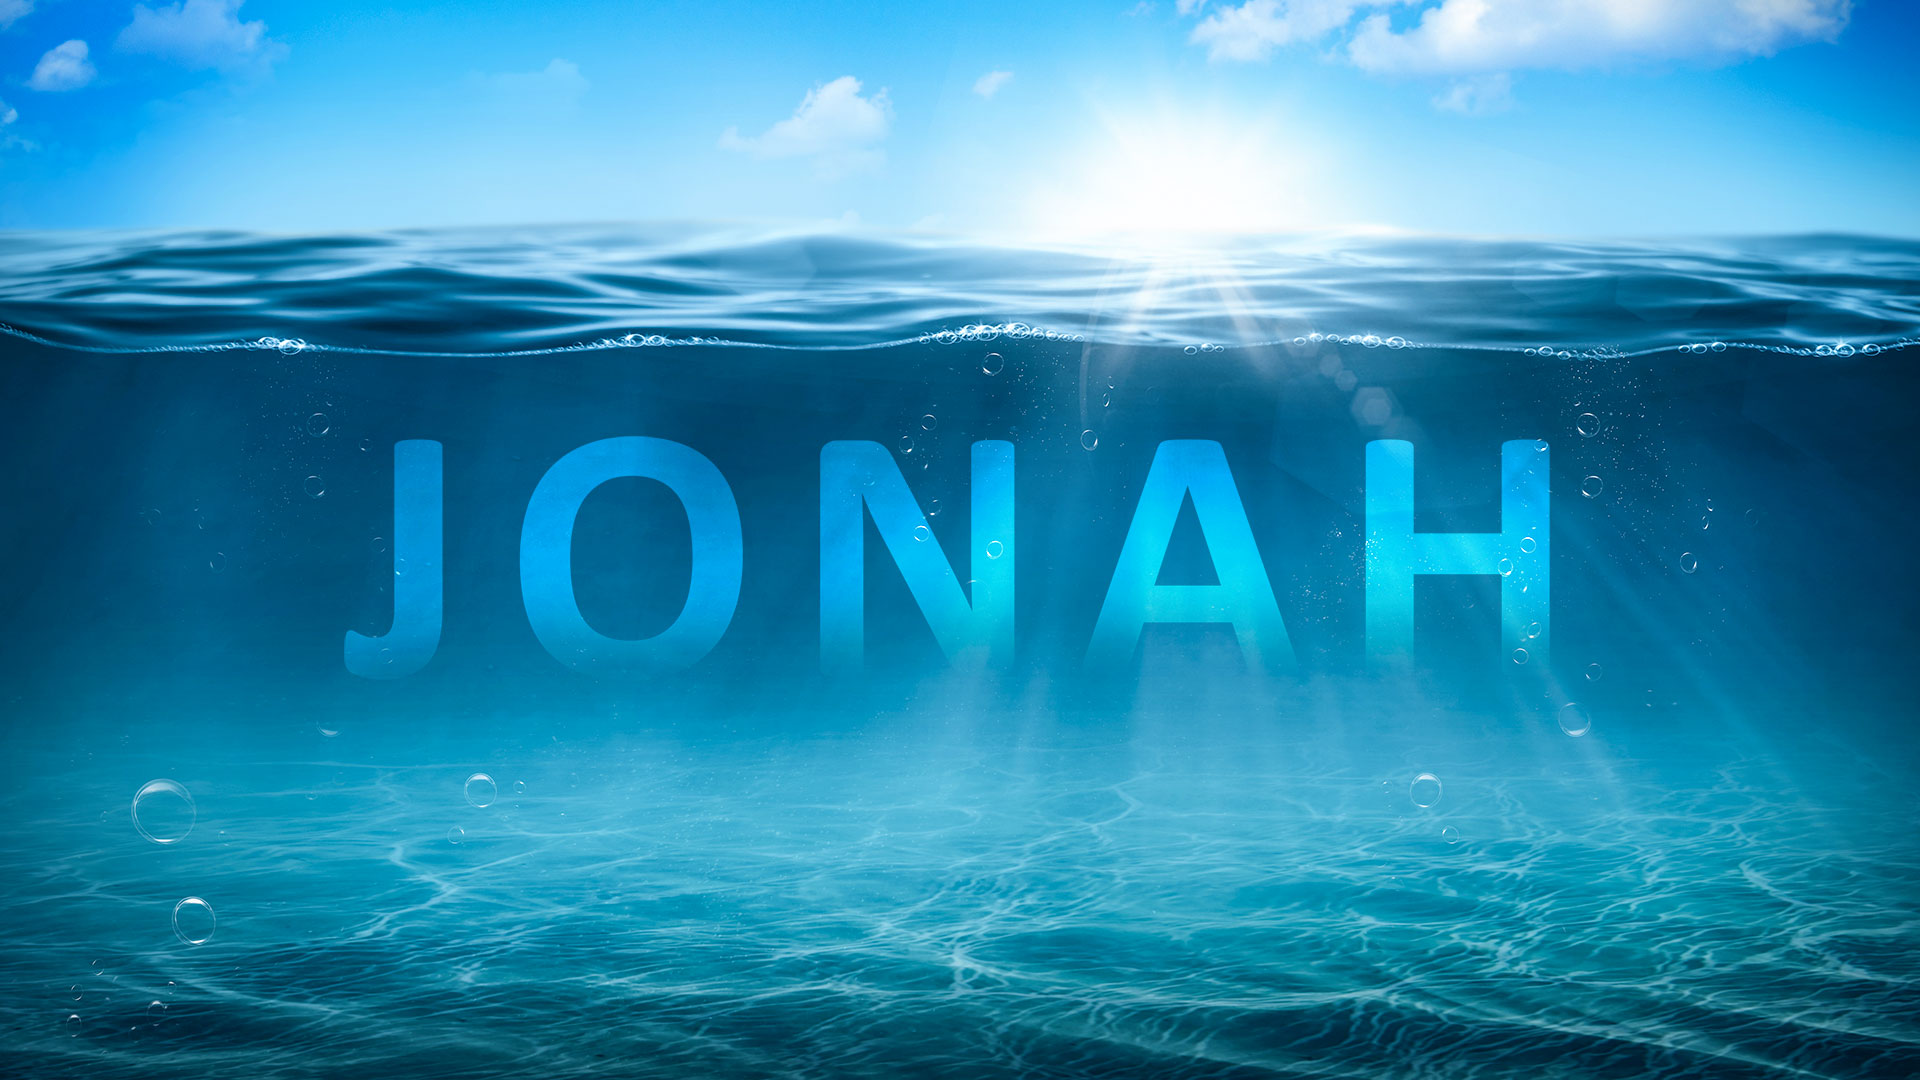 Jonah (Pt 7) The preacher who was angry when revival came